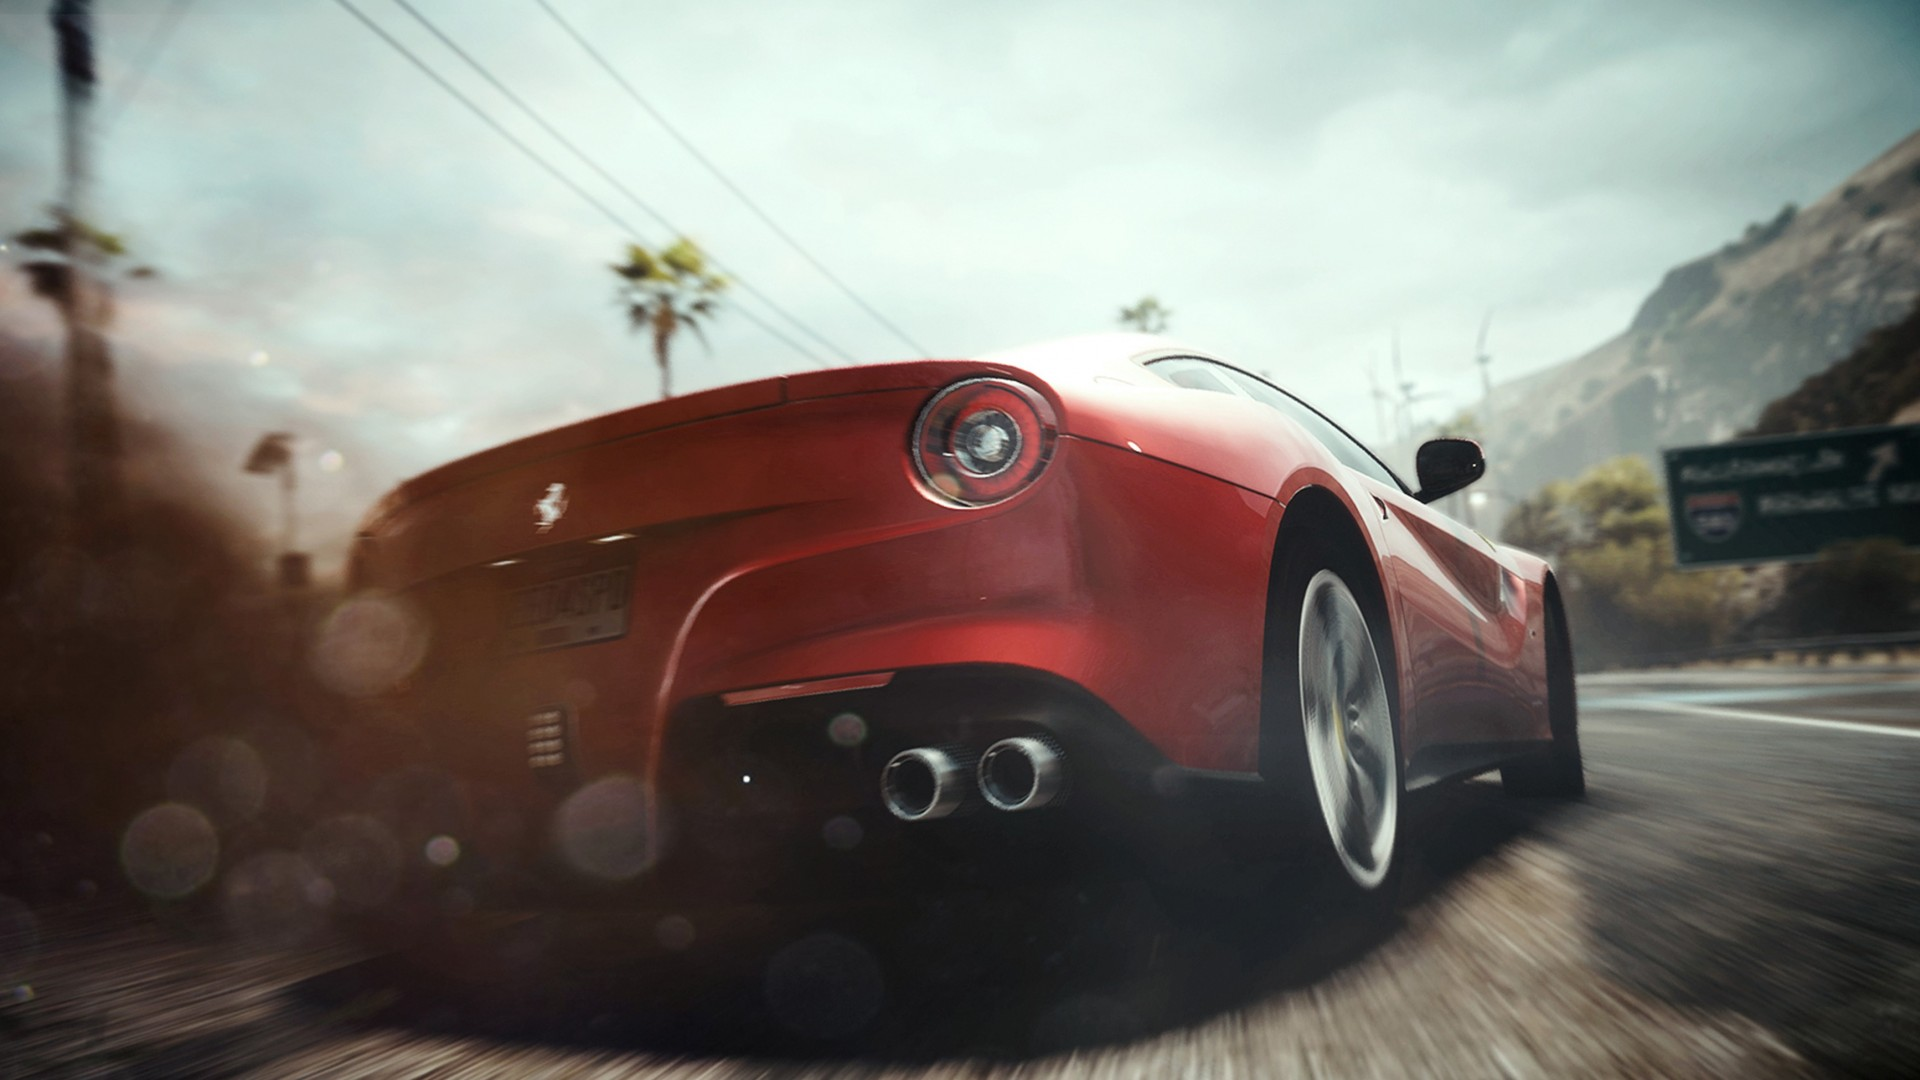 ferrari_need_for_speed_racing_rivals_game_1920x1080_24311